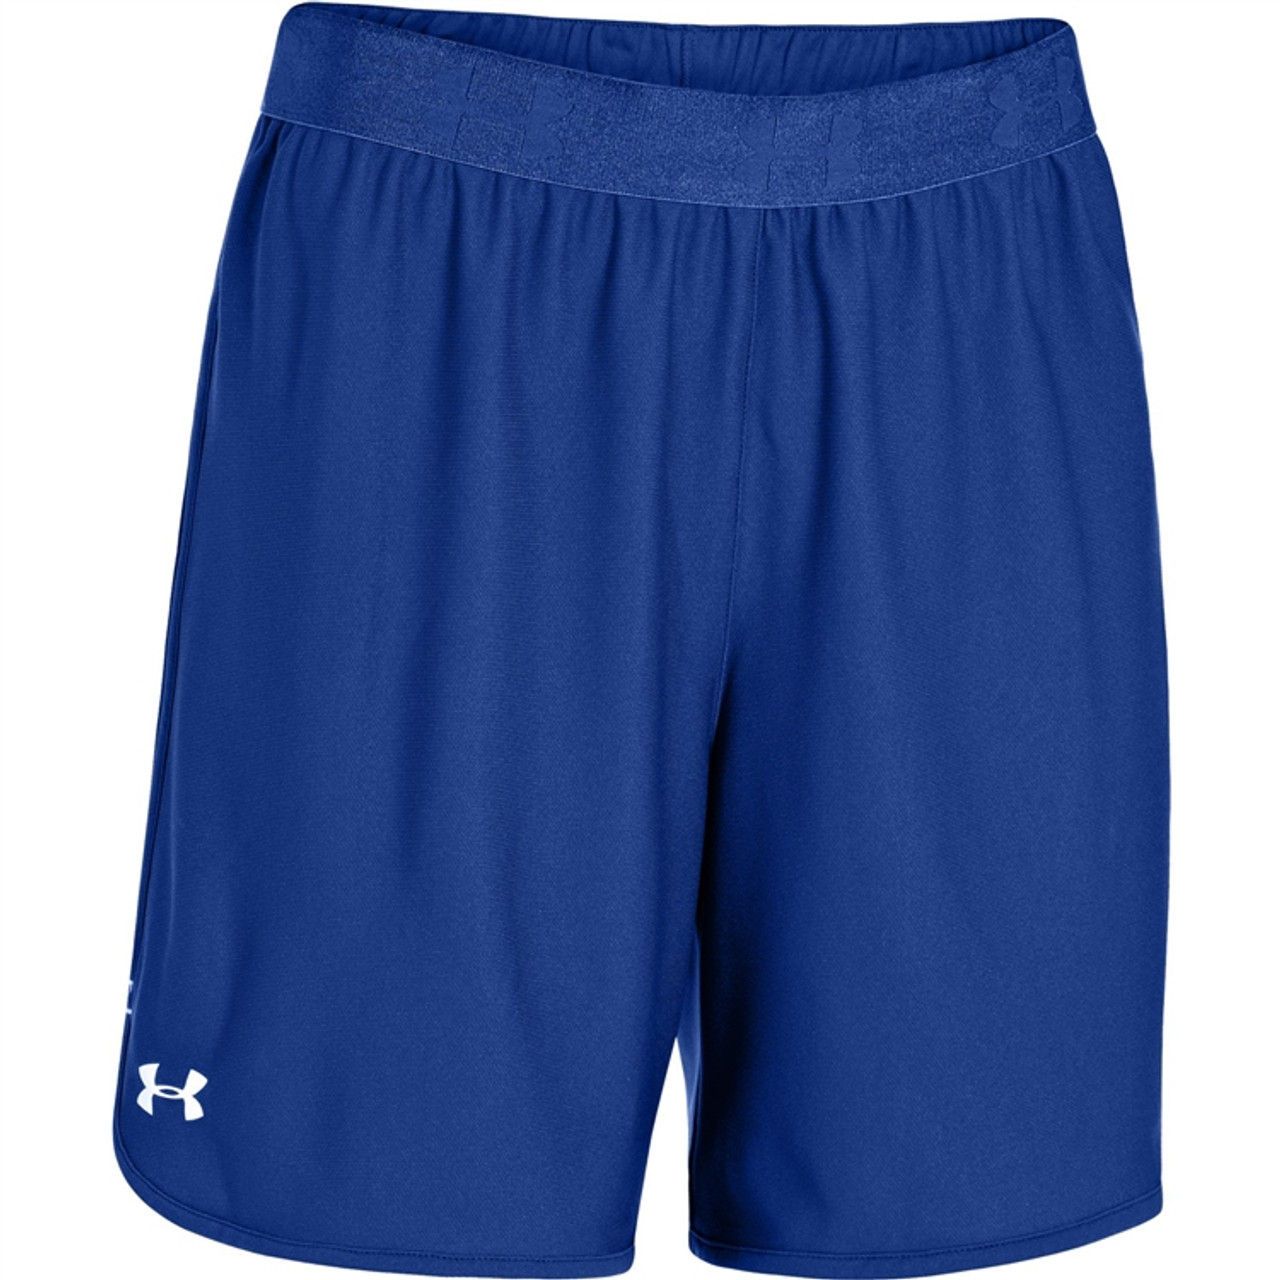 7a750398 Under Armour Every Team's Armour Women's Short